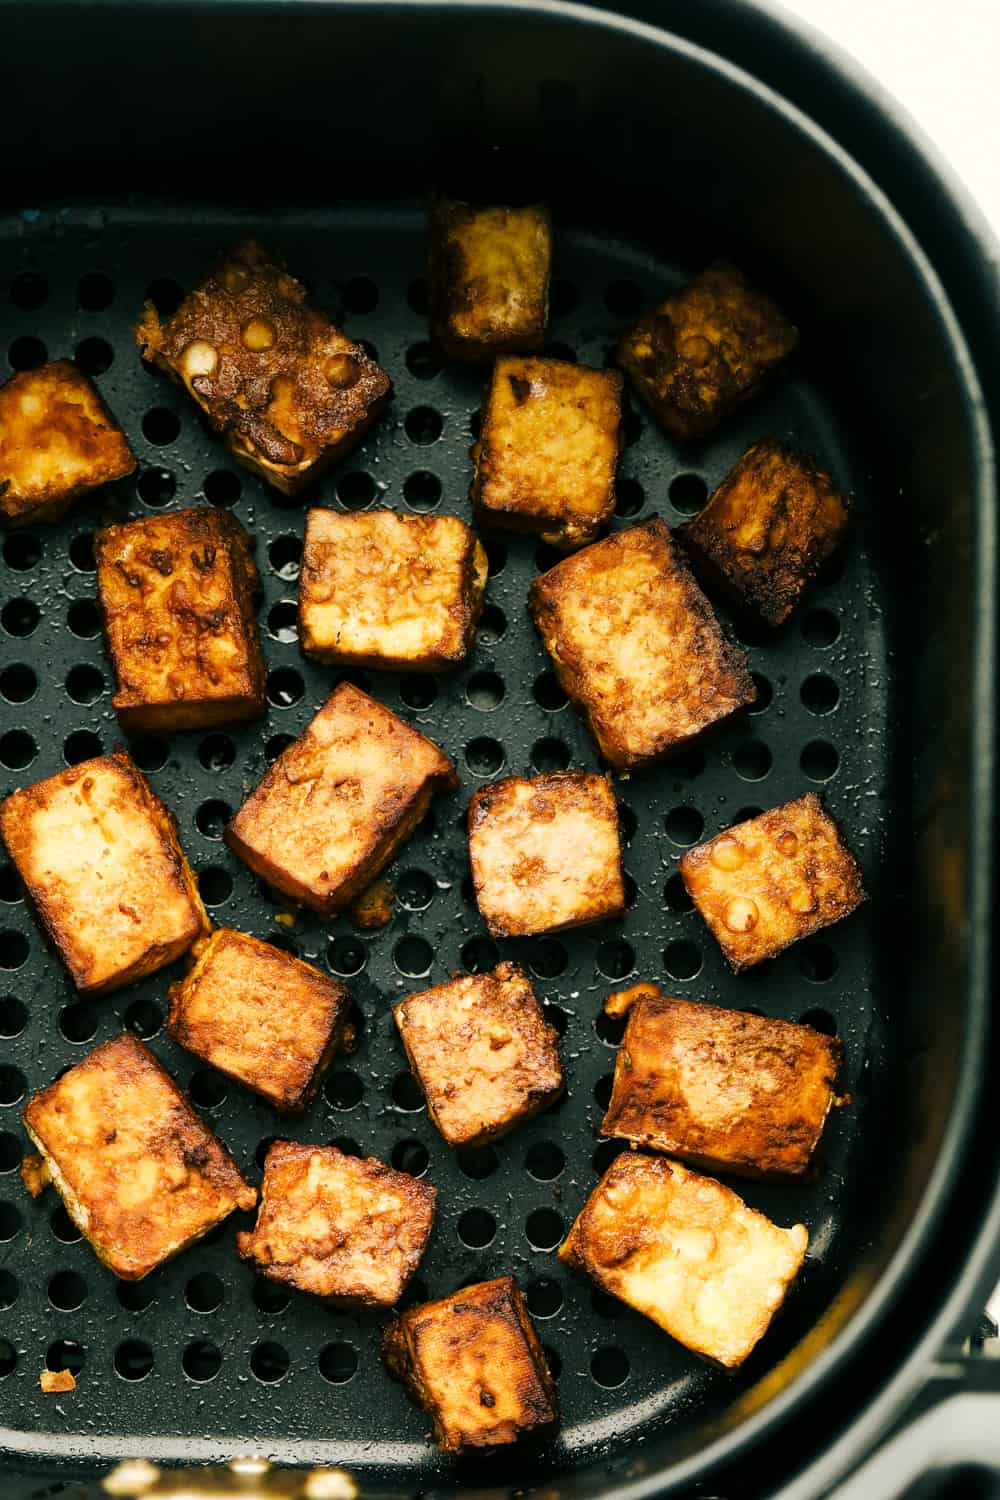 Tofu cooked in the air fryer.